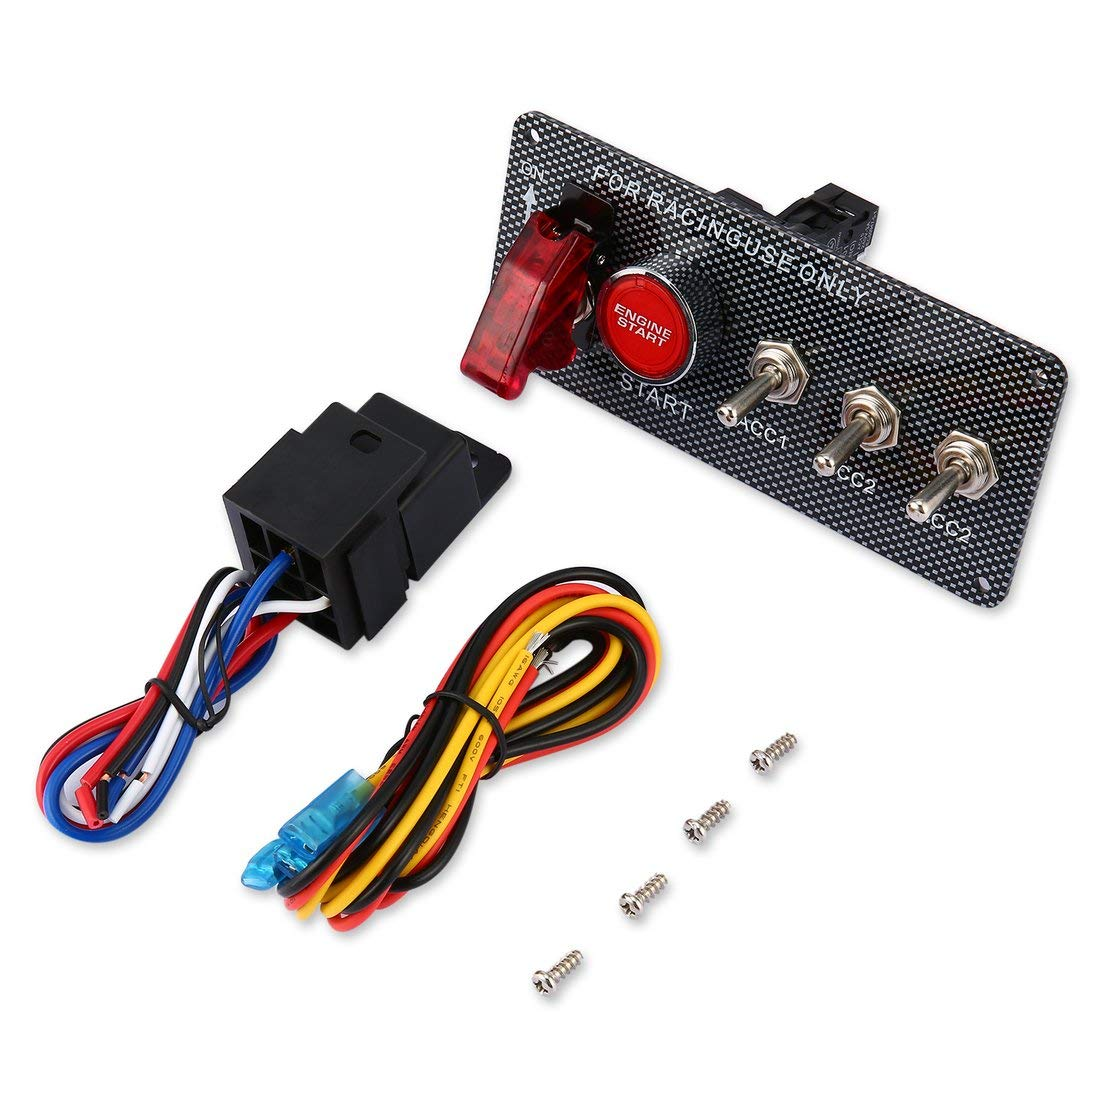 Universal Ignition Switch Engine Start Push Button Racing Car 3 Toggle Panel 12V Professional RC Switch for Car Modification - black Sanzhileg